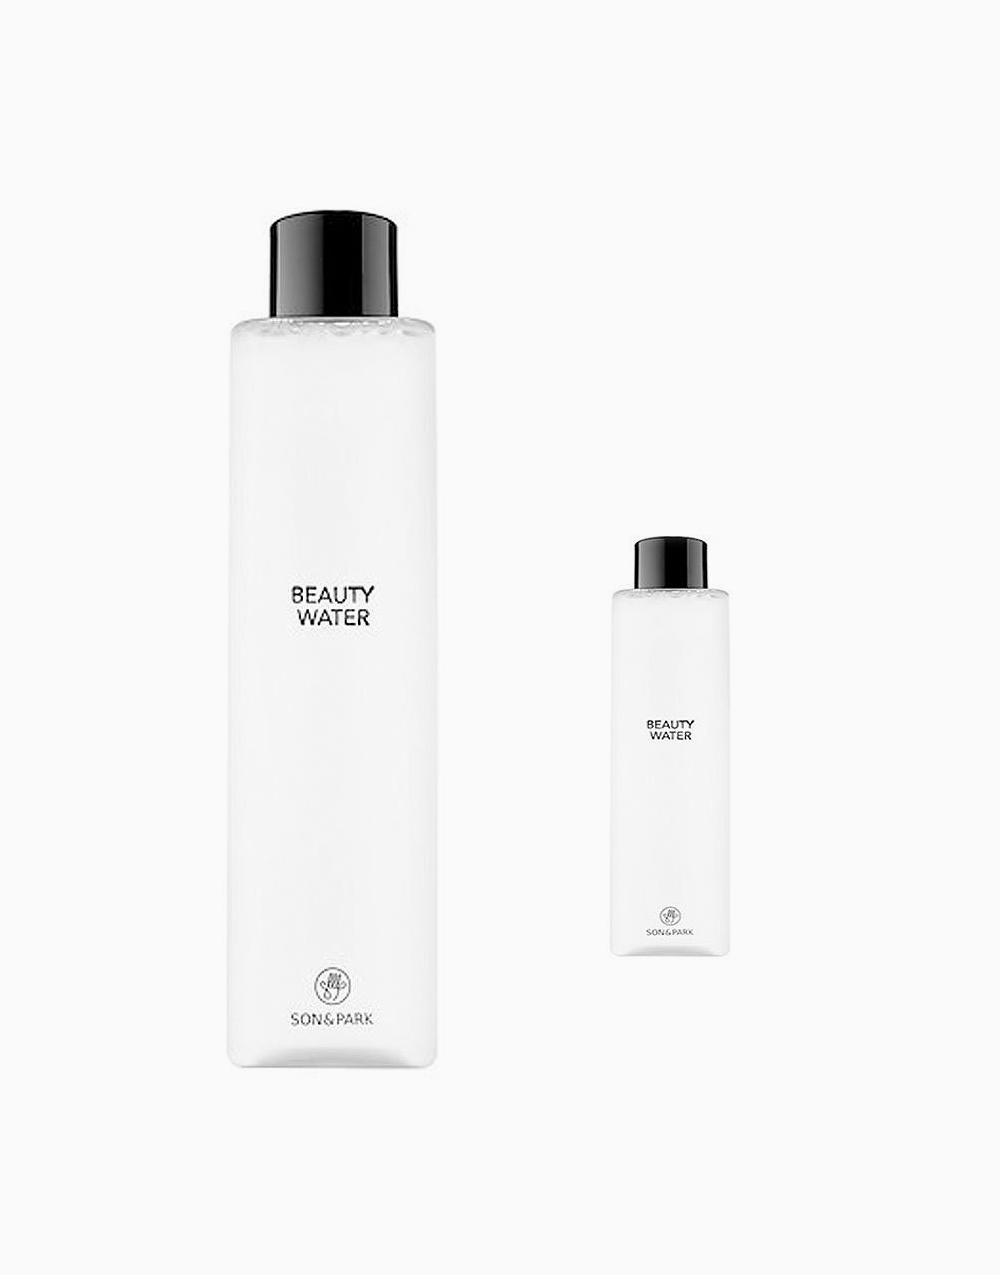 Beauty Water Gift Set by Son & Park